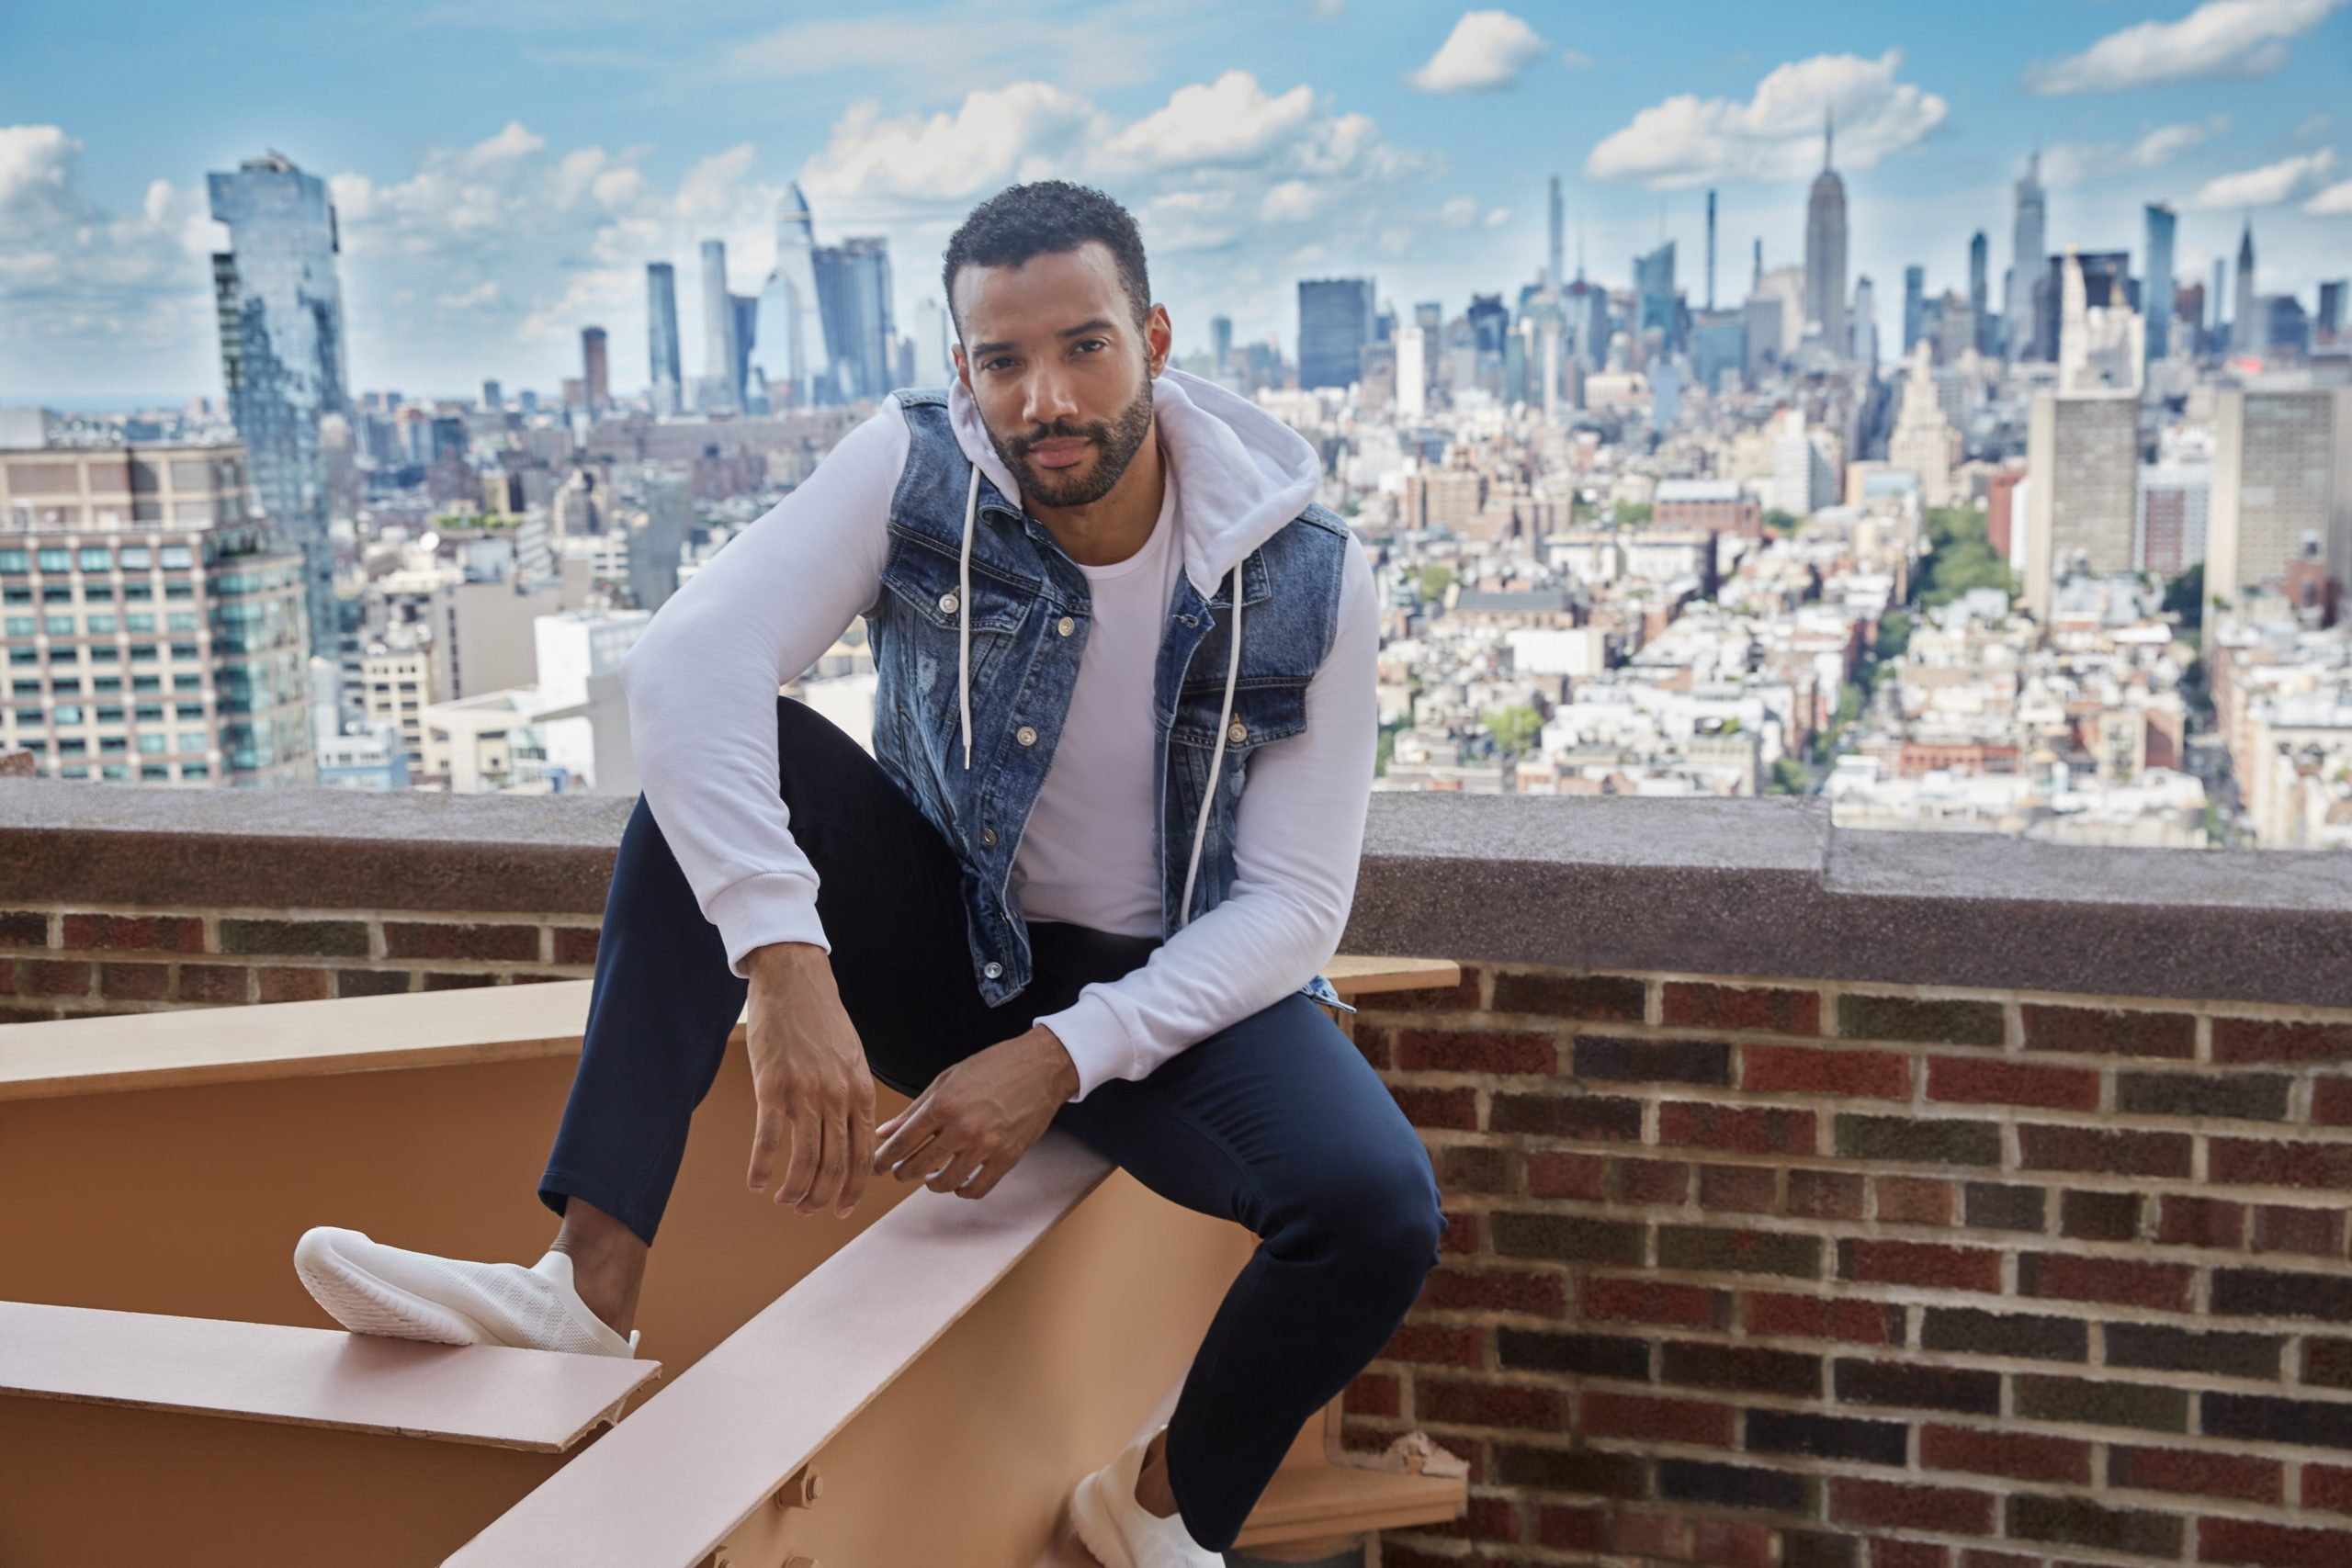 New York & Company introduces men's apparel online this fall—the first of several key product expansion into footwear and home goods.